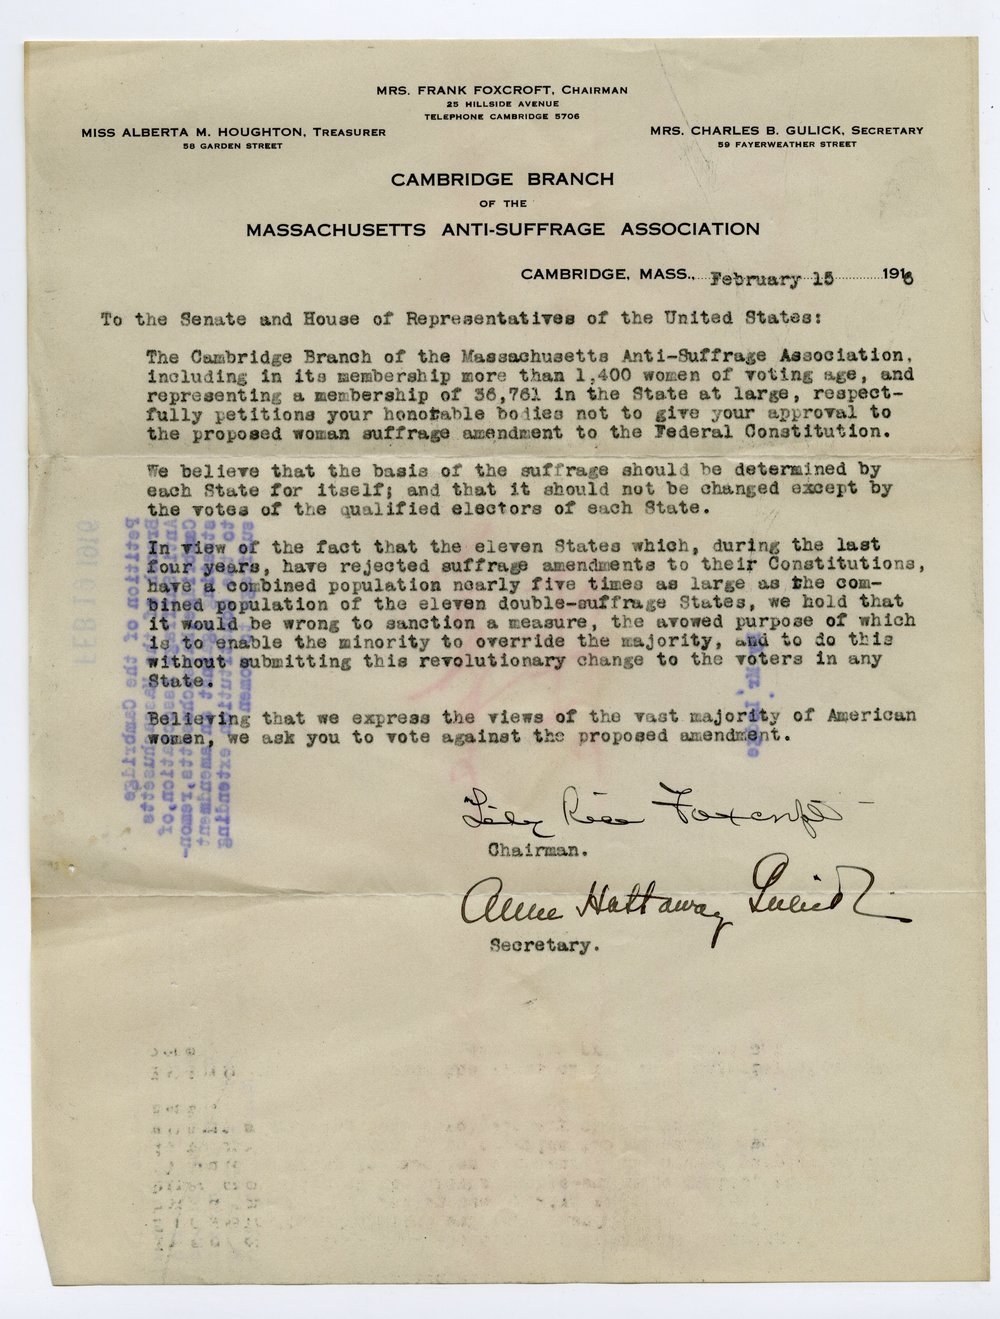 Letter from the Cambridge Branch of the Massachusetts Anti-Suffrage Association to the Congress of the United States of America